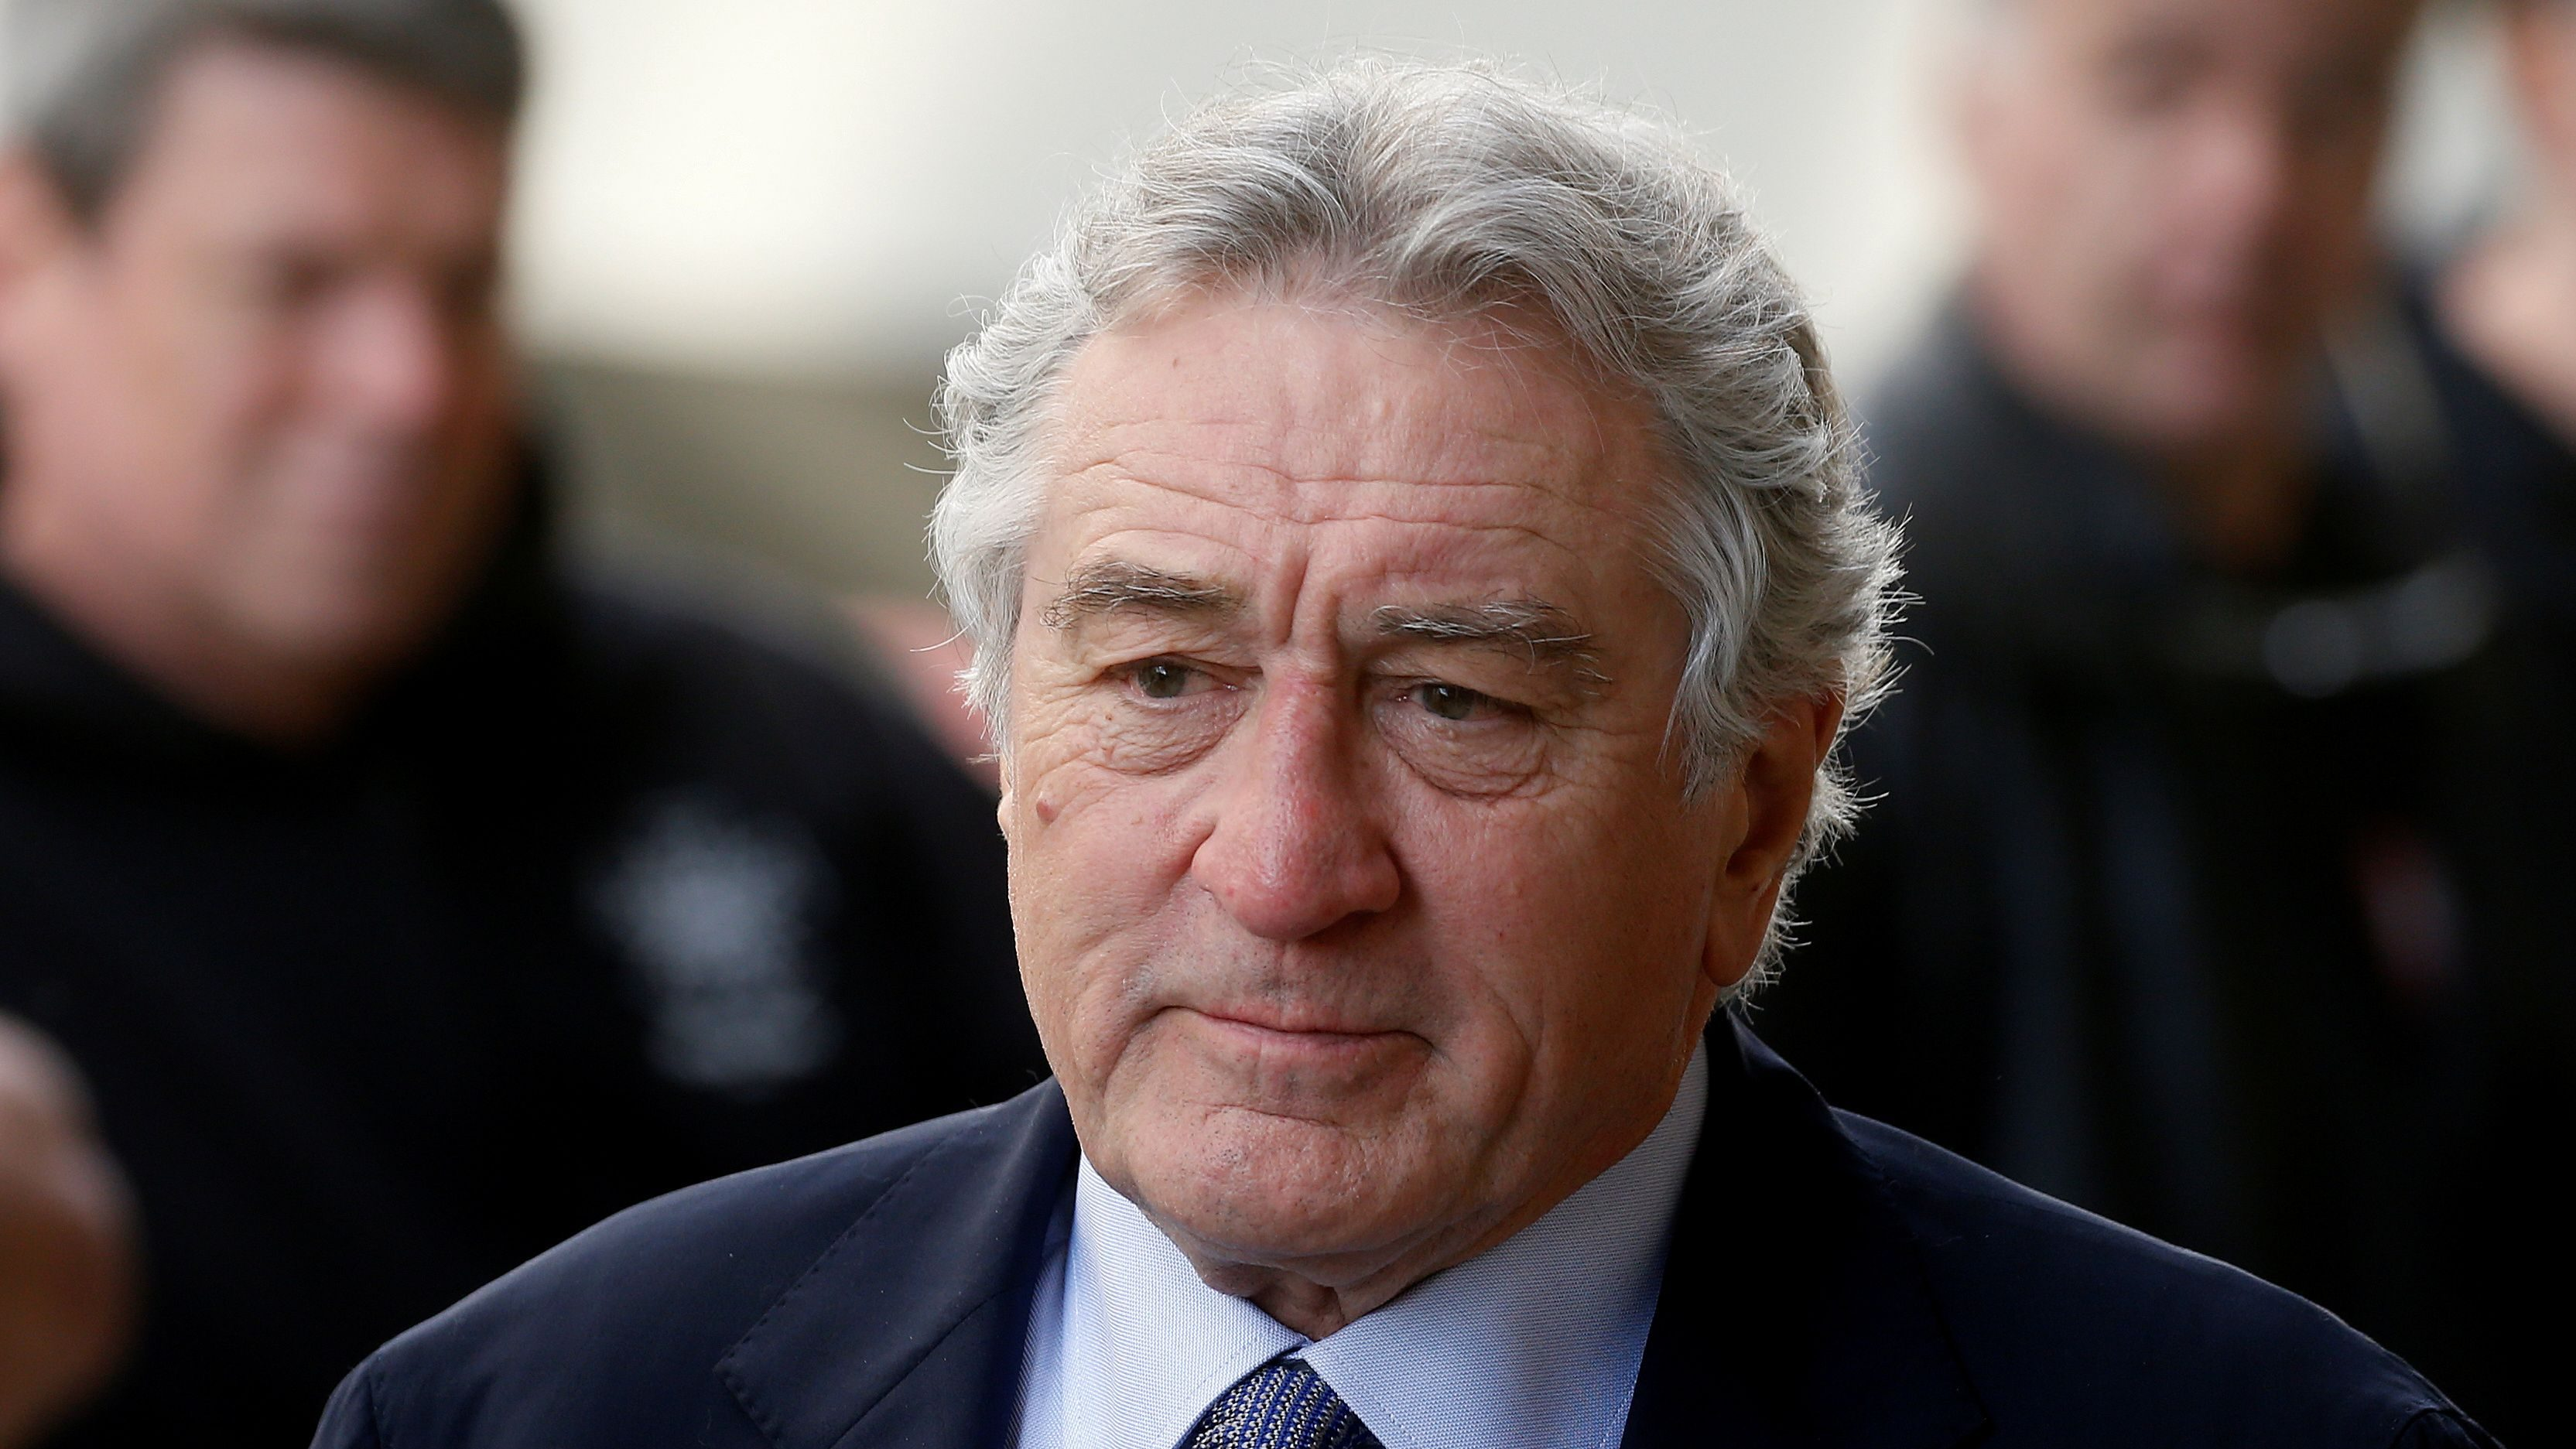 FILE PHOTO: Actor Robert De Niro arrives to receive his Chaplin Award from the Film Society of Lincoln Center in the Manhattan borough of New York, U.S. May 8, 2017. REUTERS/Carlo Allegri/File Photo - RC1E44AC9A50